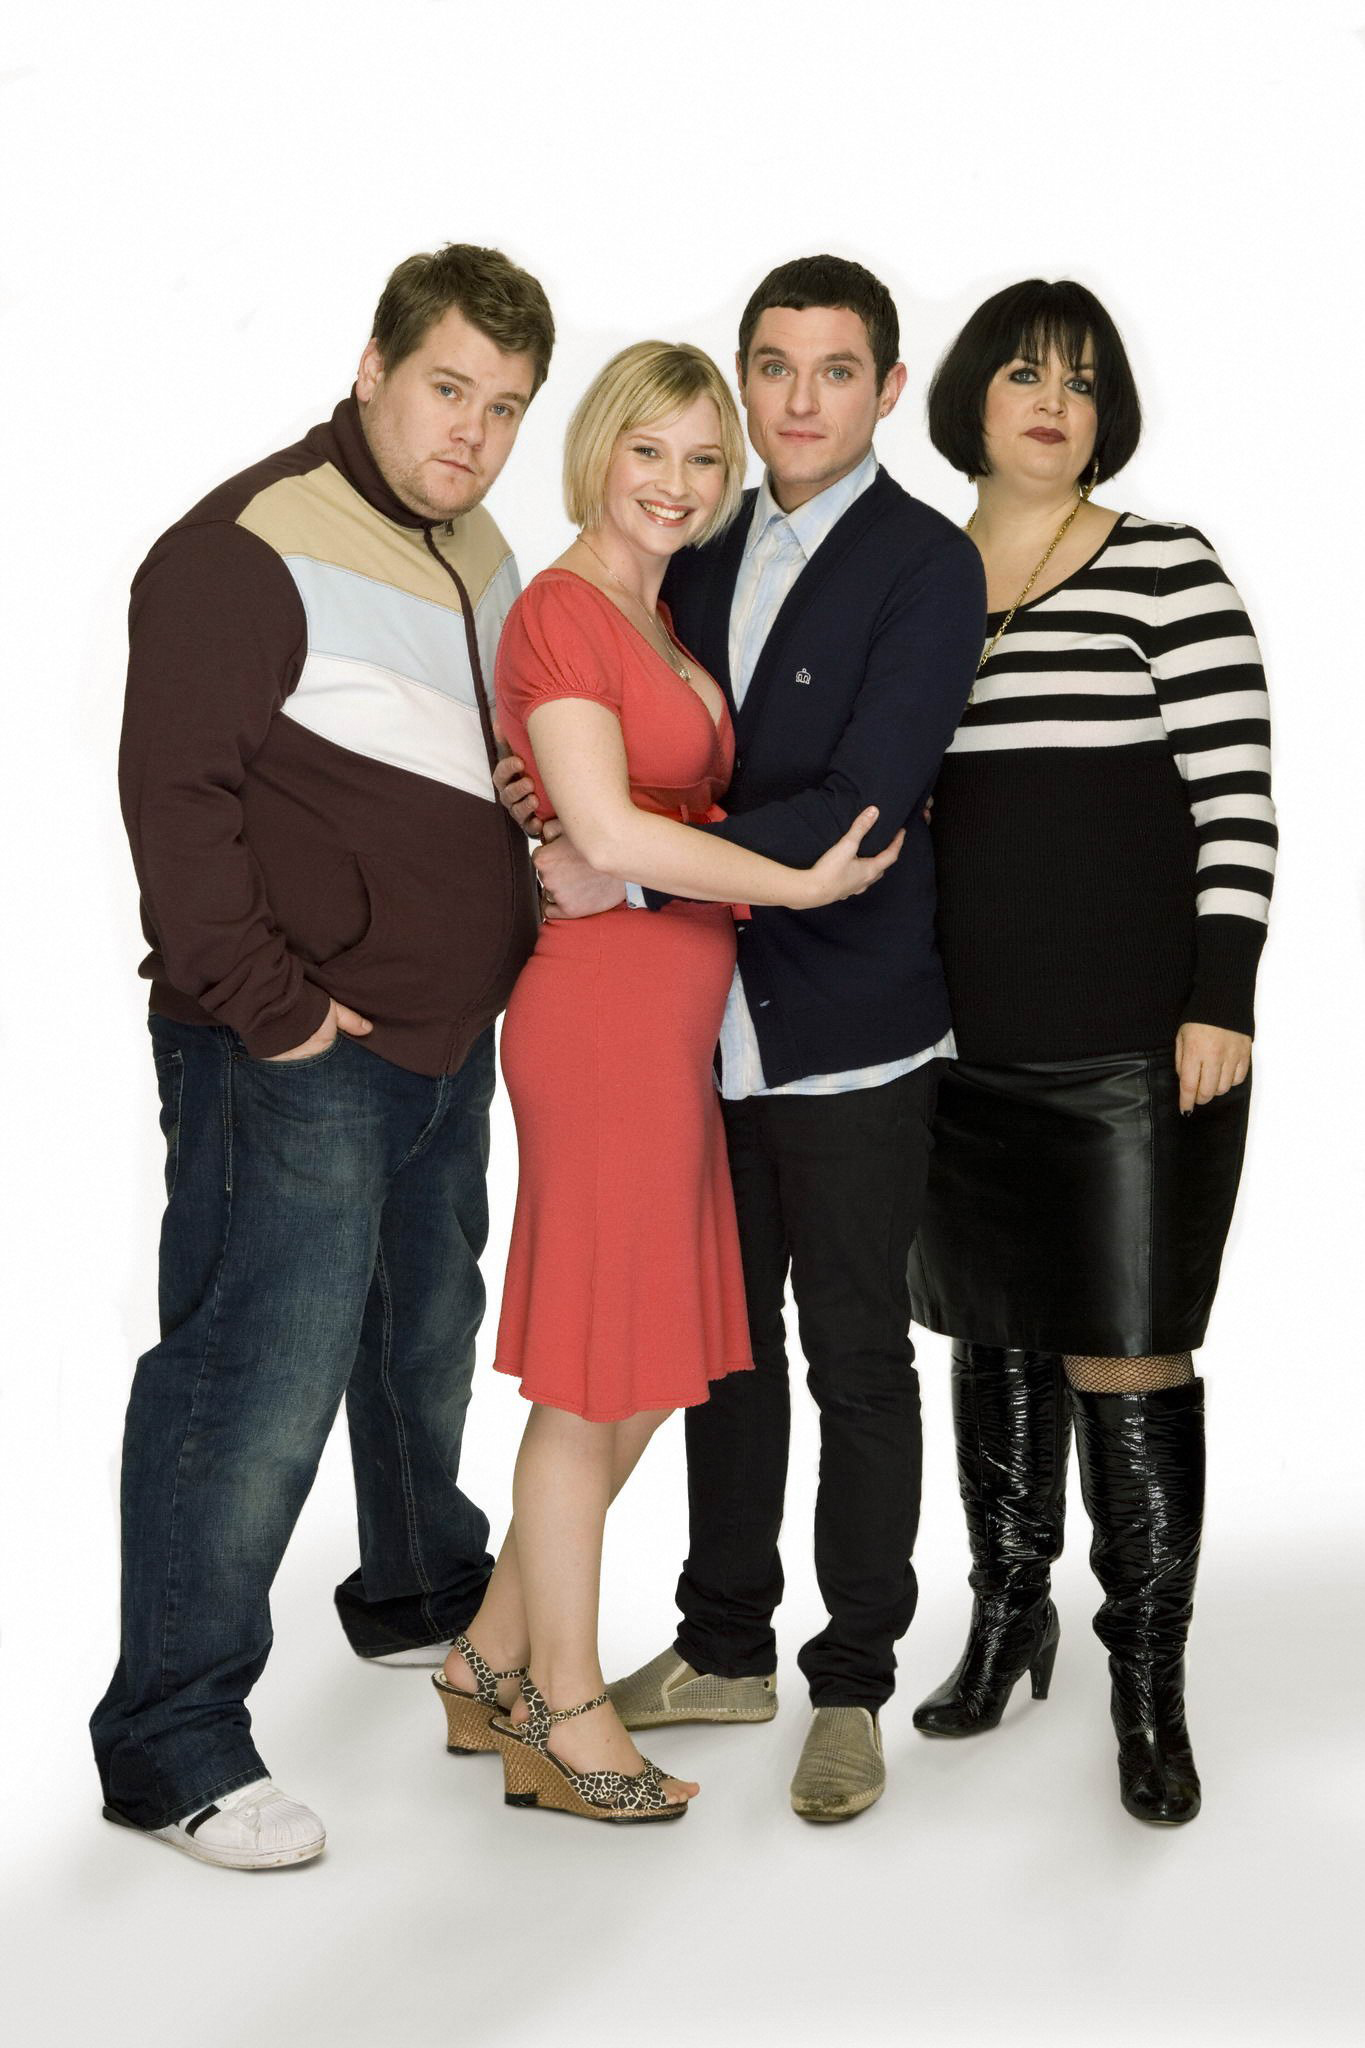 More Gavin and Stacey in the pipeline?